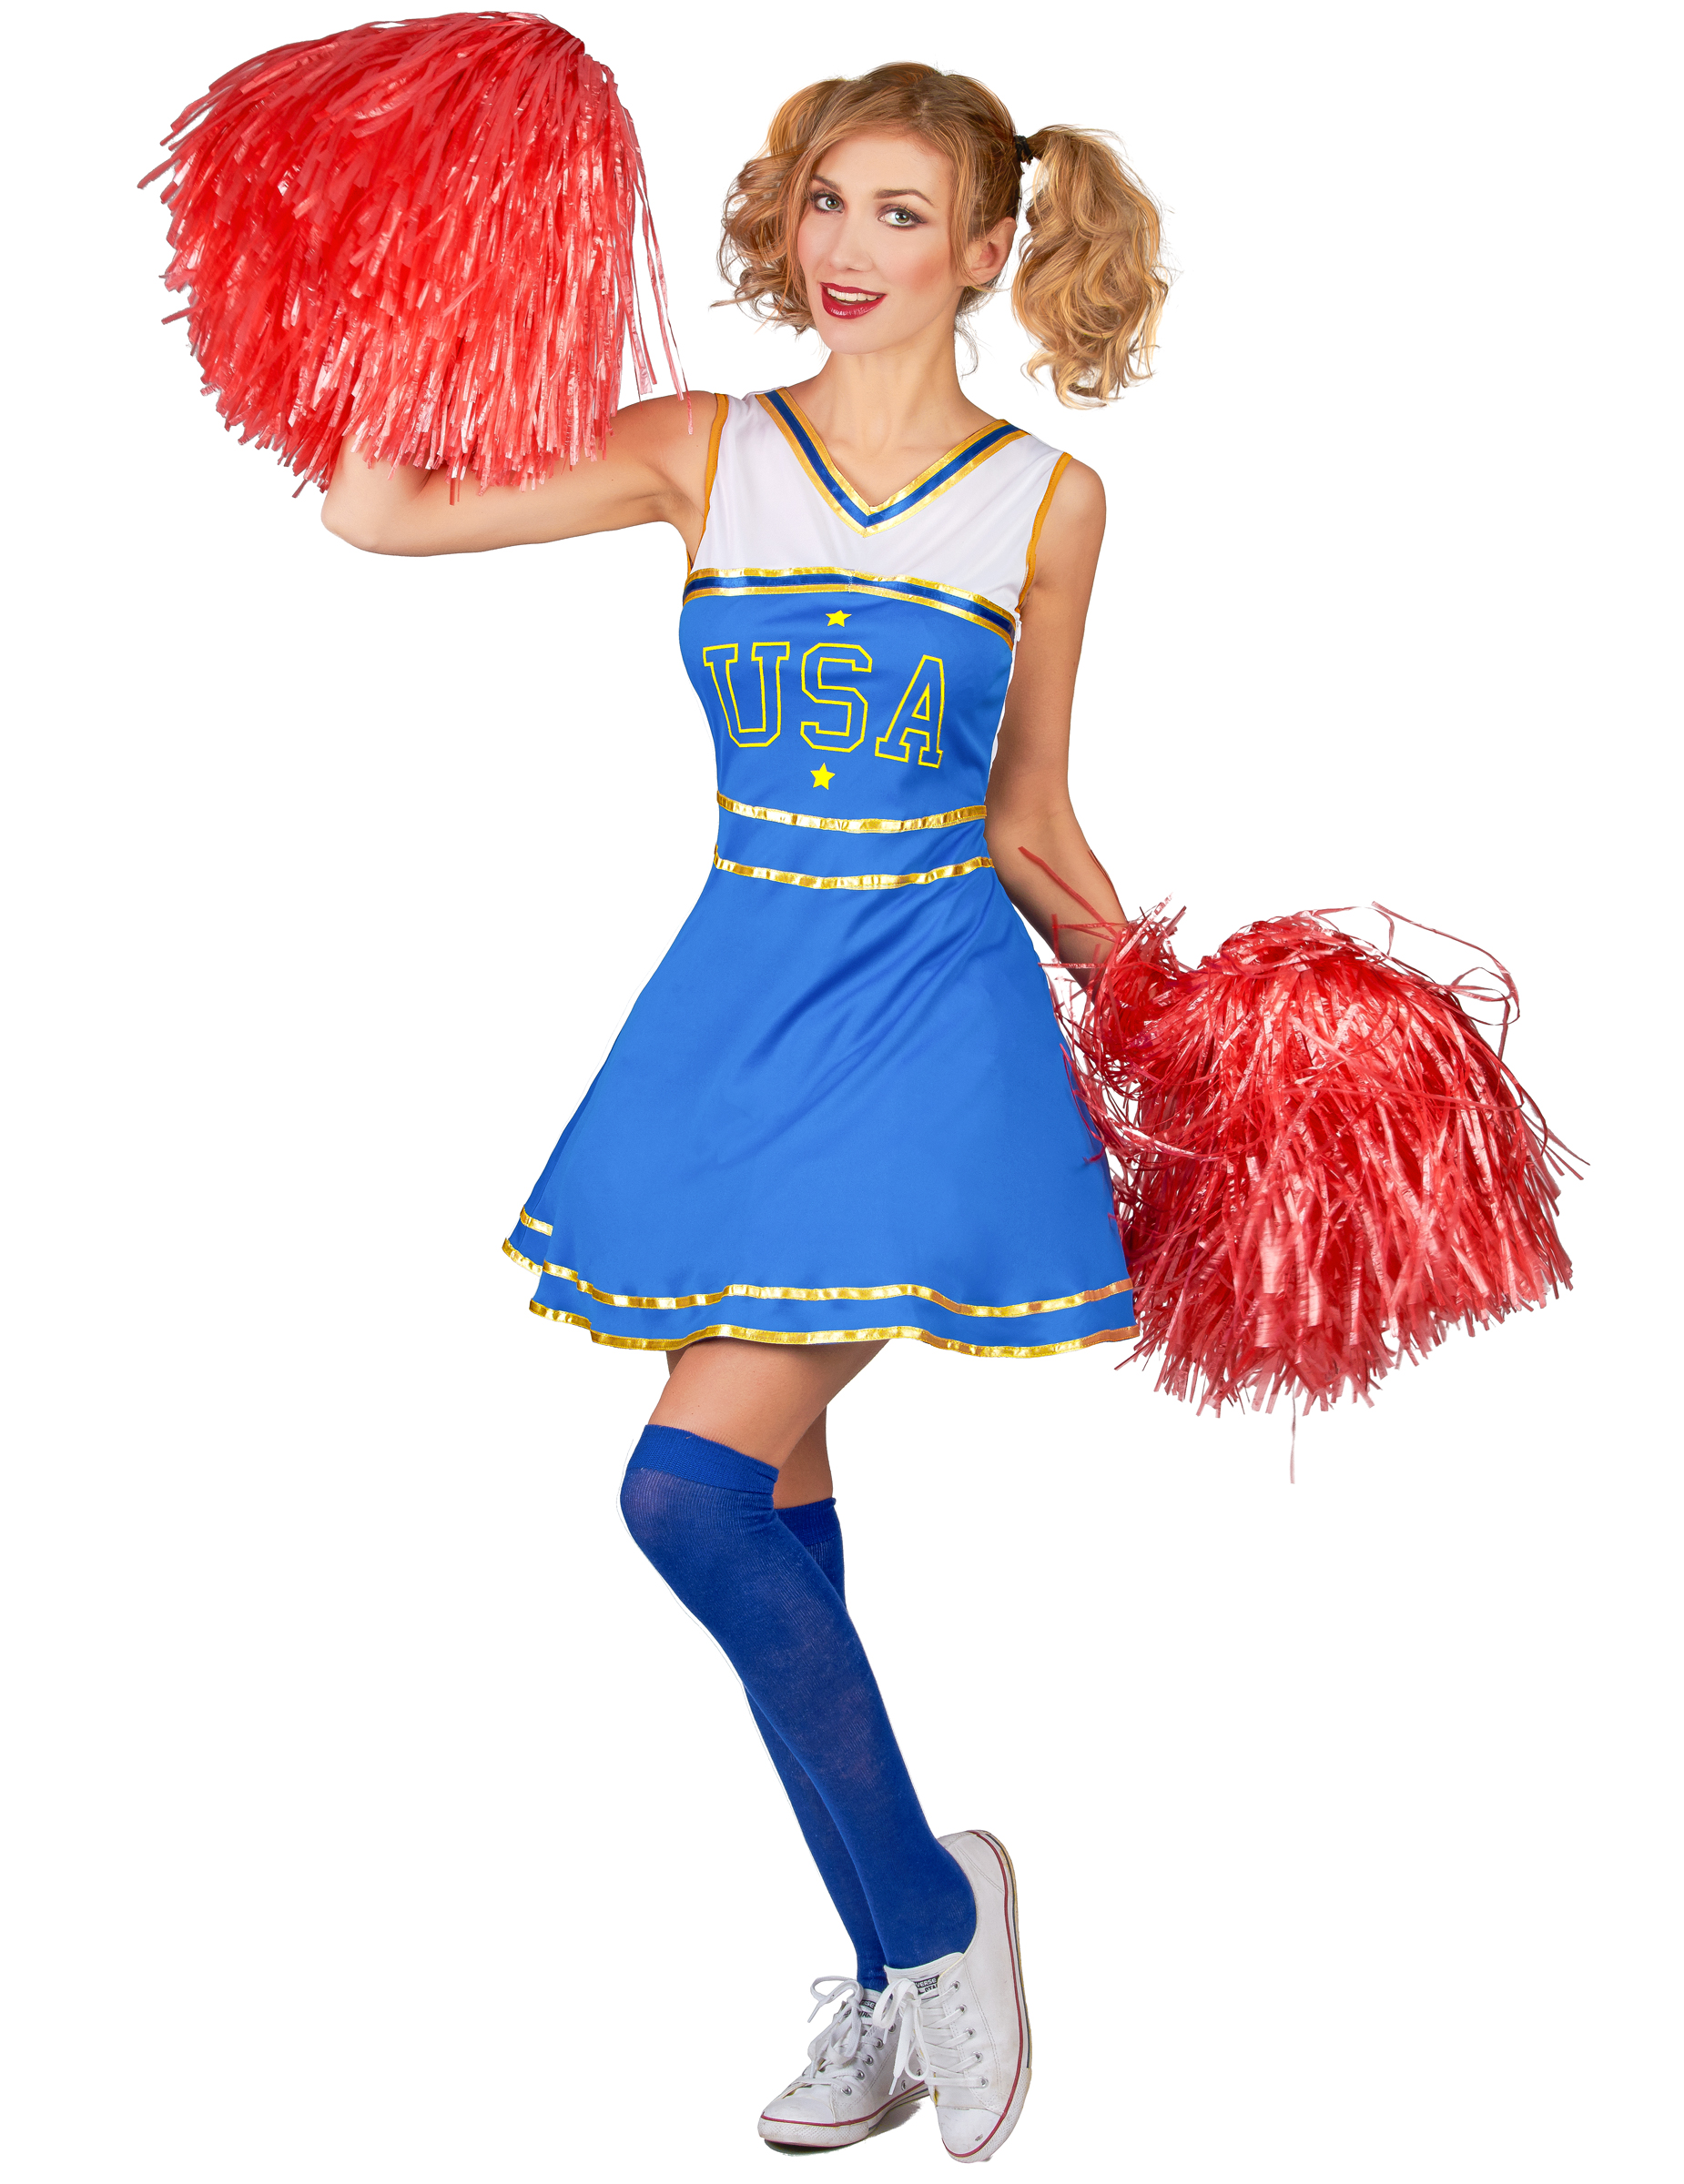 ba0cdf5172183 Costume da cheerleader USA per donna su VegaooParty